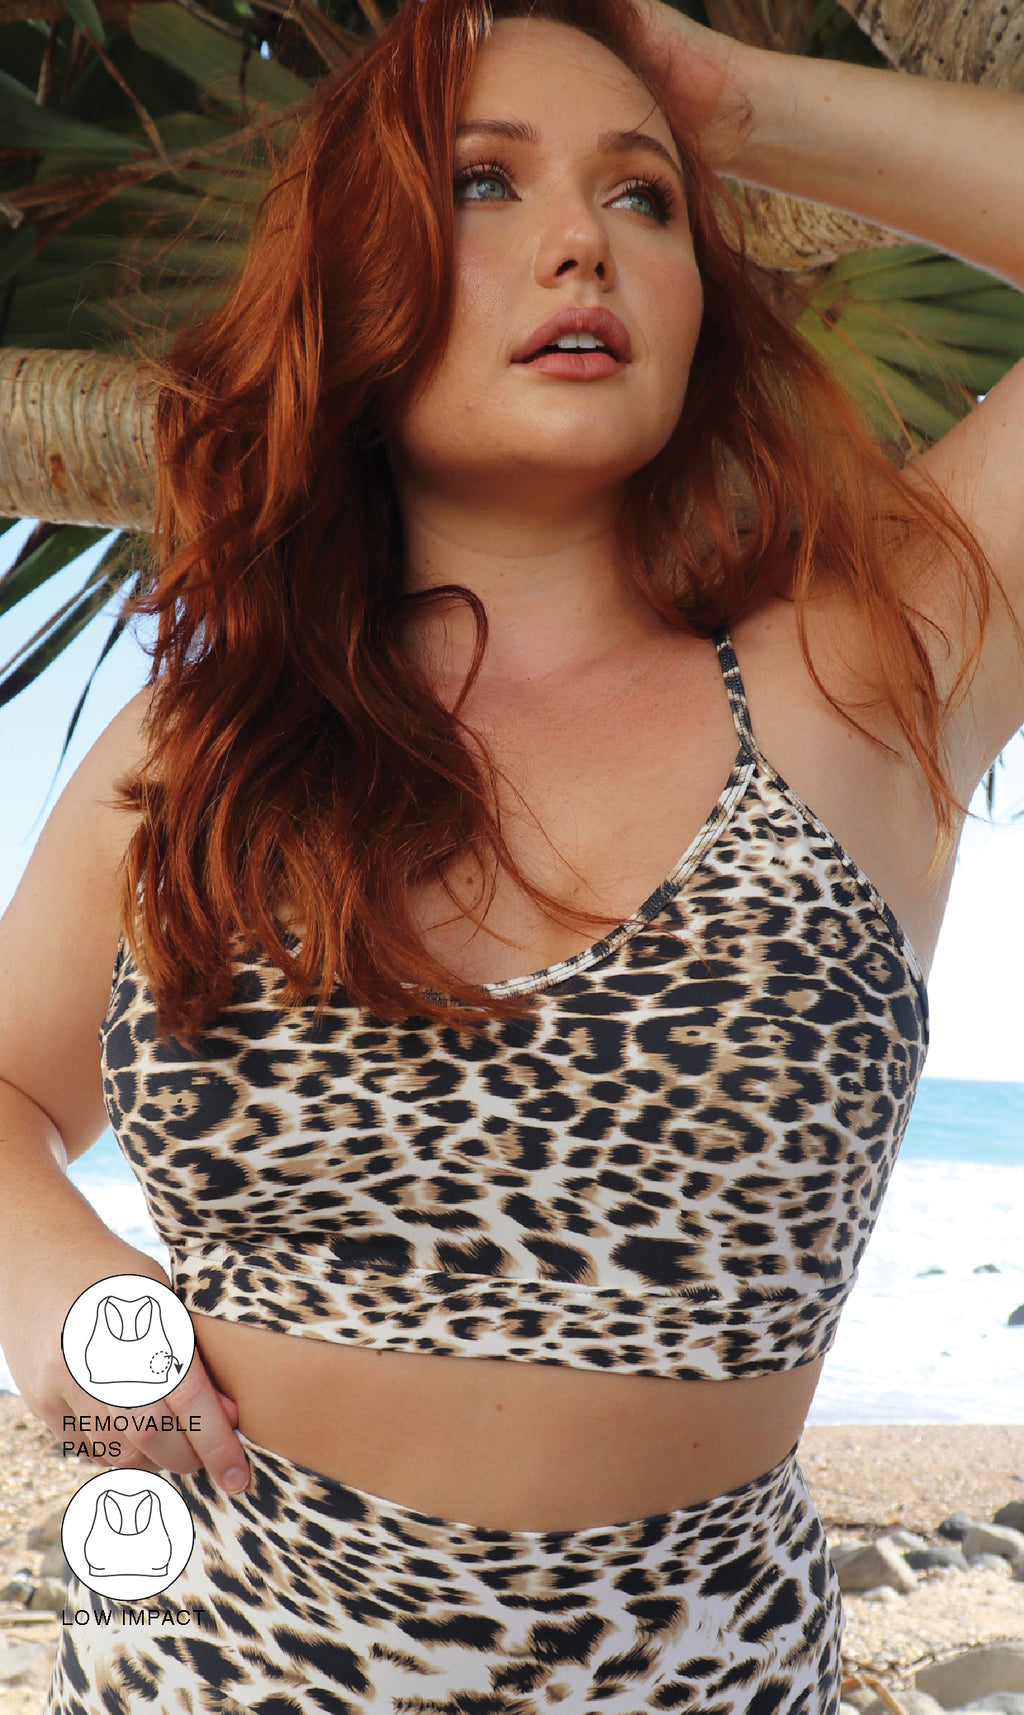 Front View: Lady wearing brown & white cheetah print momentum bra under palm tree